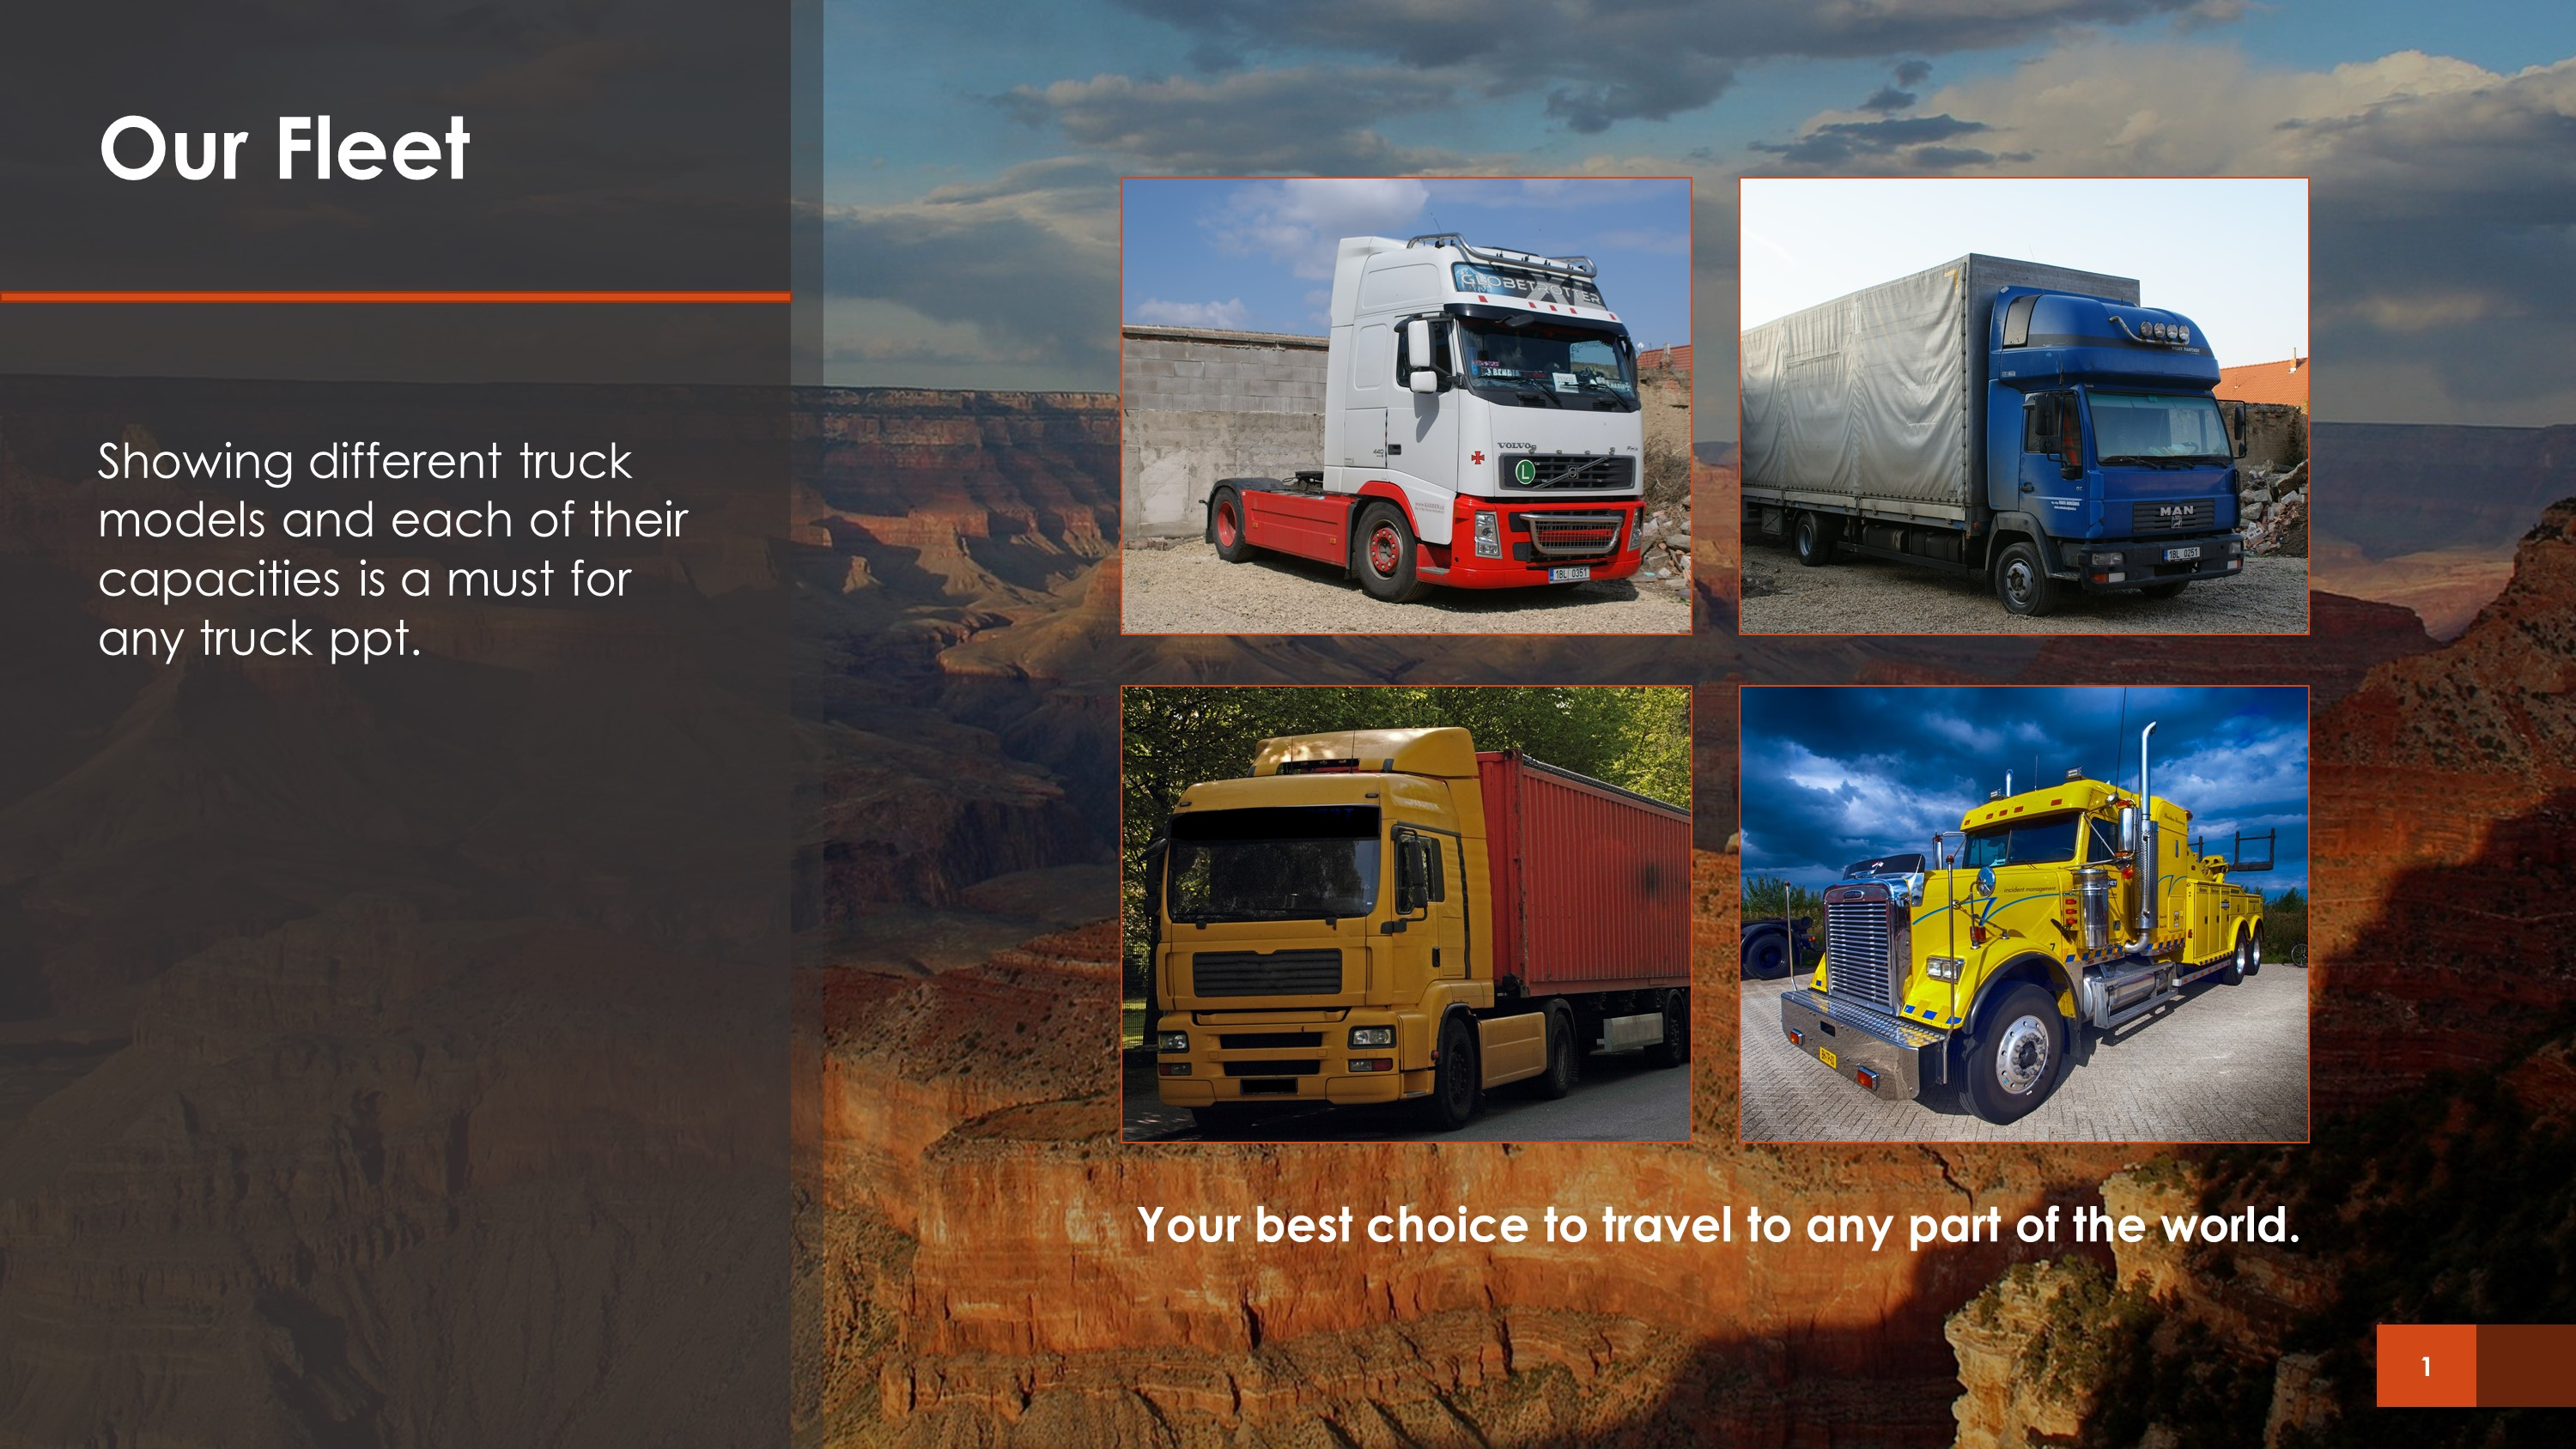 Our Fleet Transportation PowerPoint Slide